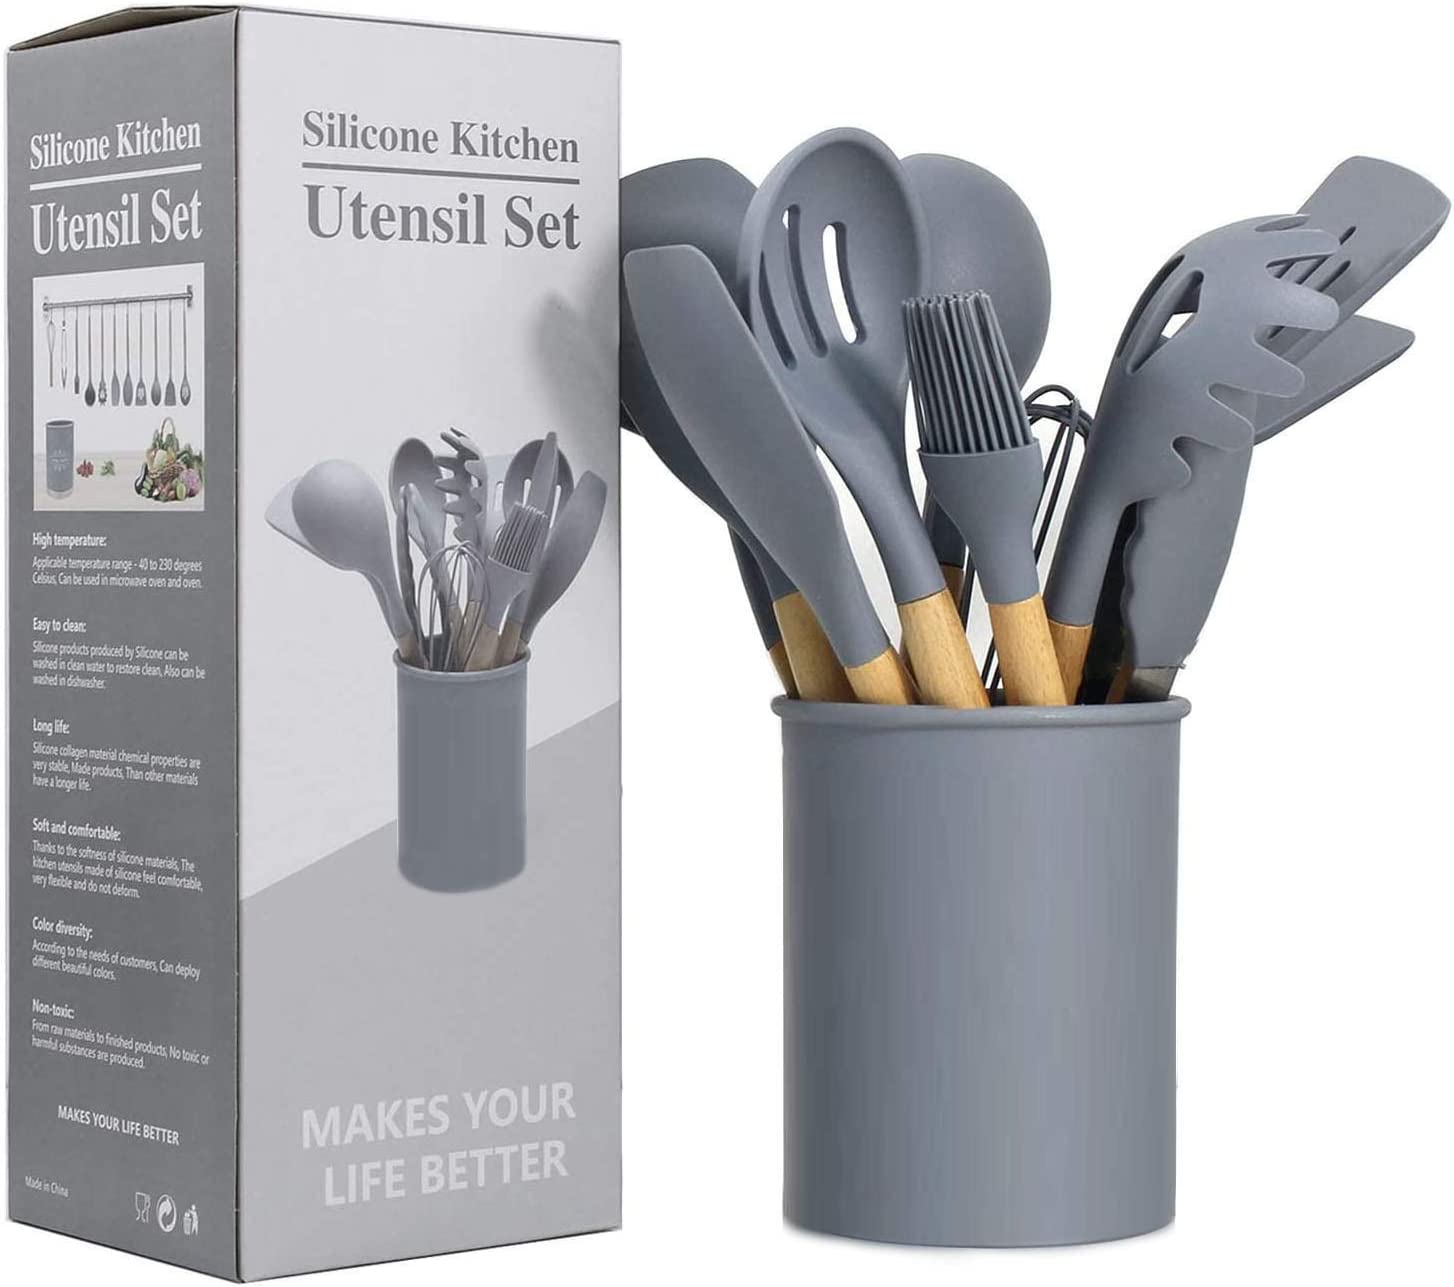 Silicone Kitchen Utensil Set, Food Grade Silicone Spatula Set 12pcs Non-Stick Cookware Special High Temperature Resistant Natural Wooden Handle Cookware Set (Dark Grey)